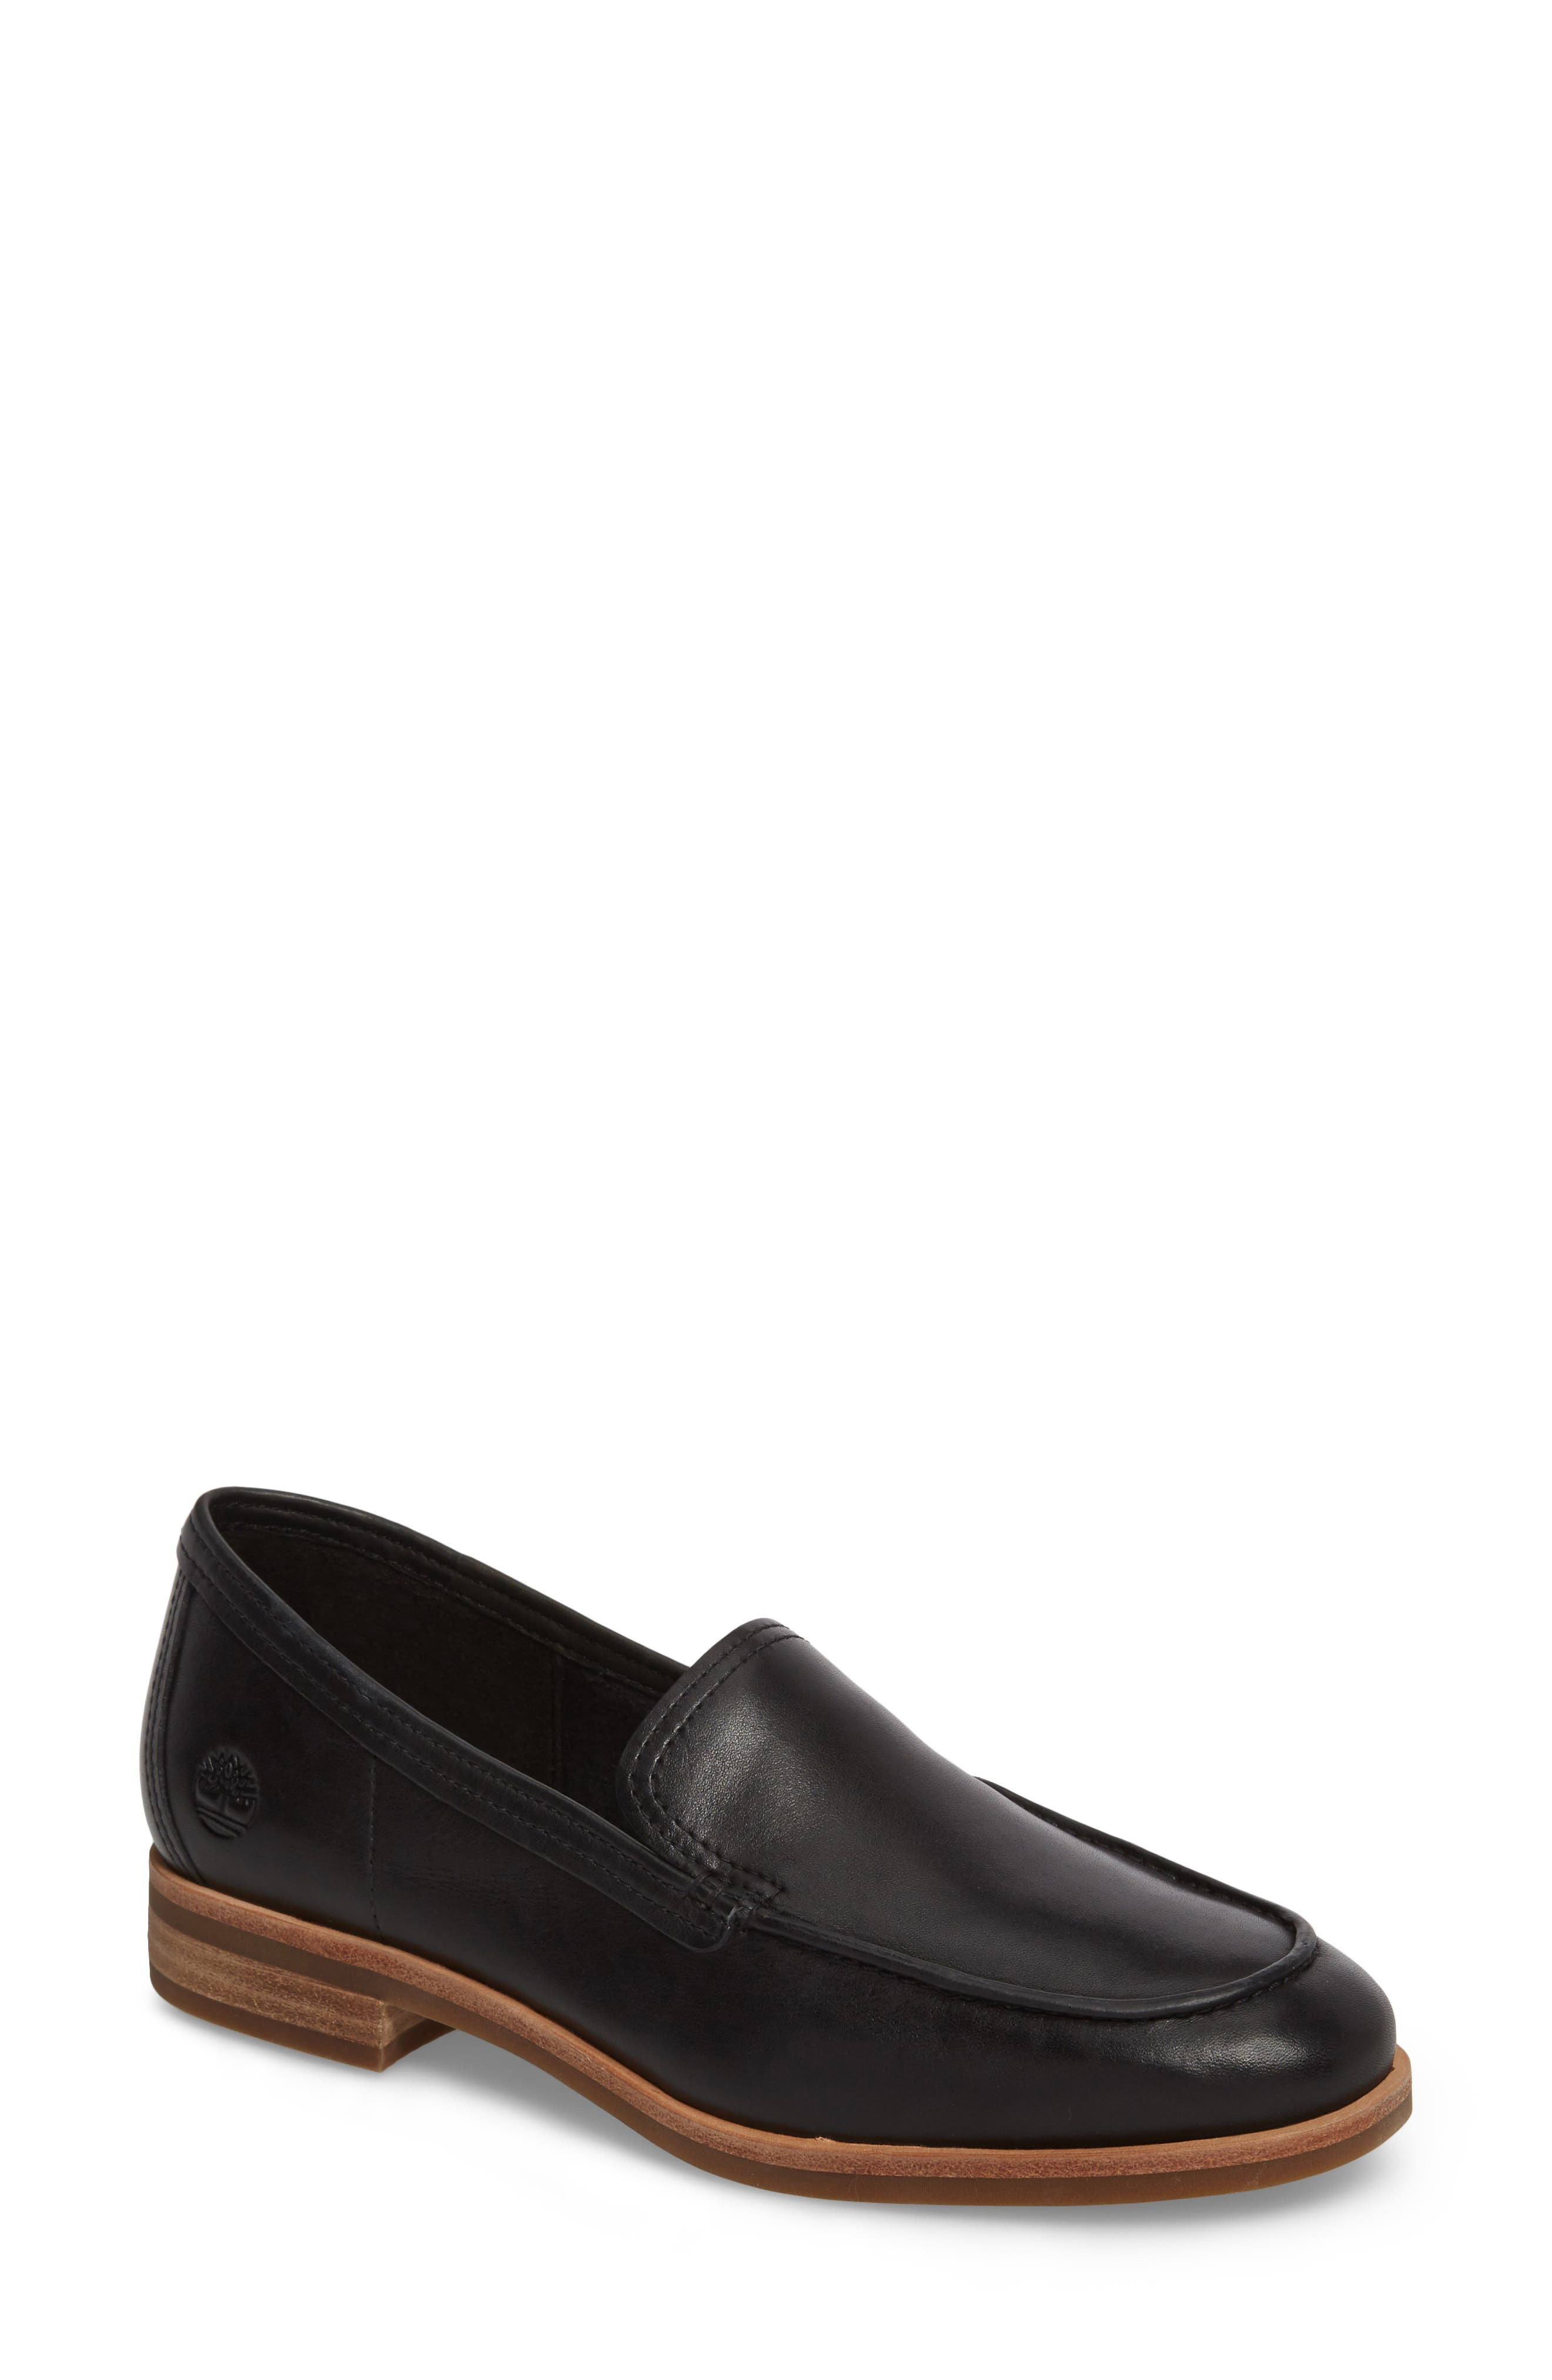 Alternate Image 1 Selected - Timberland Somers Falls Loafer (Women)